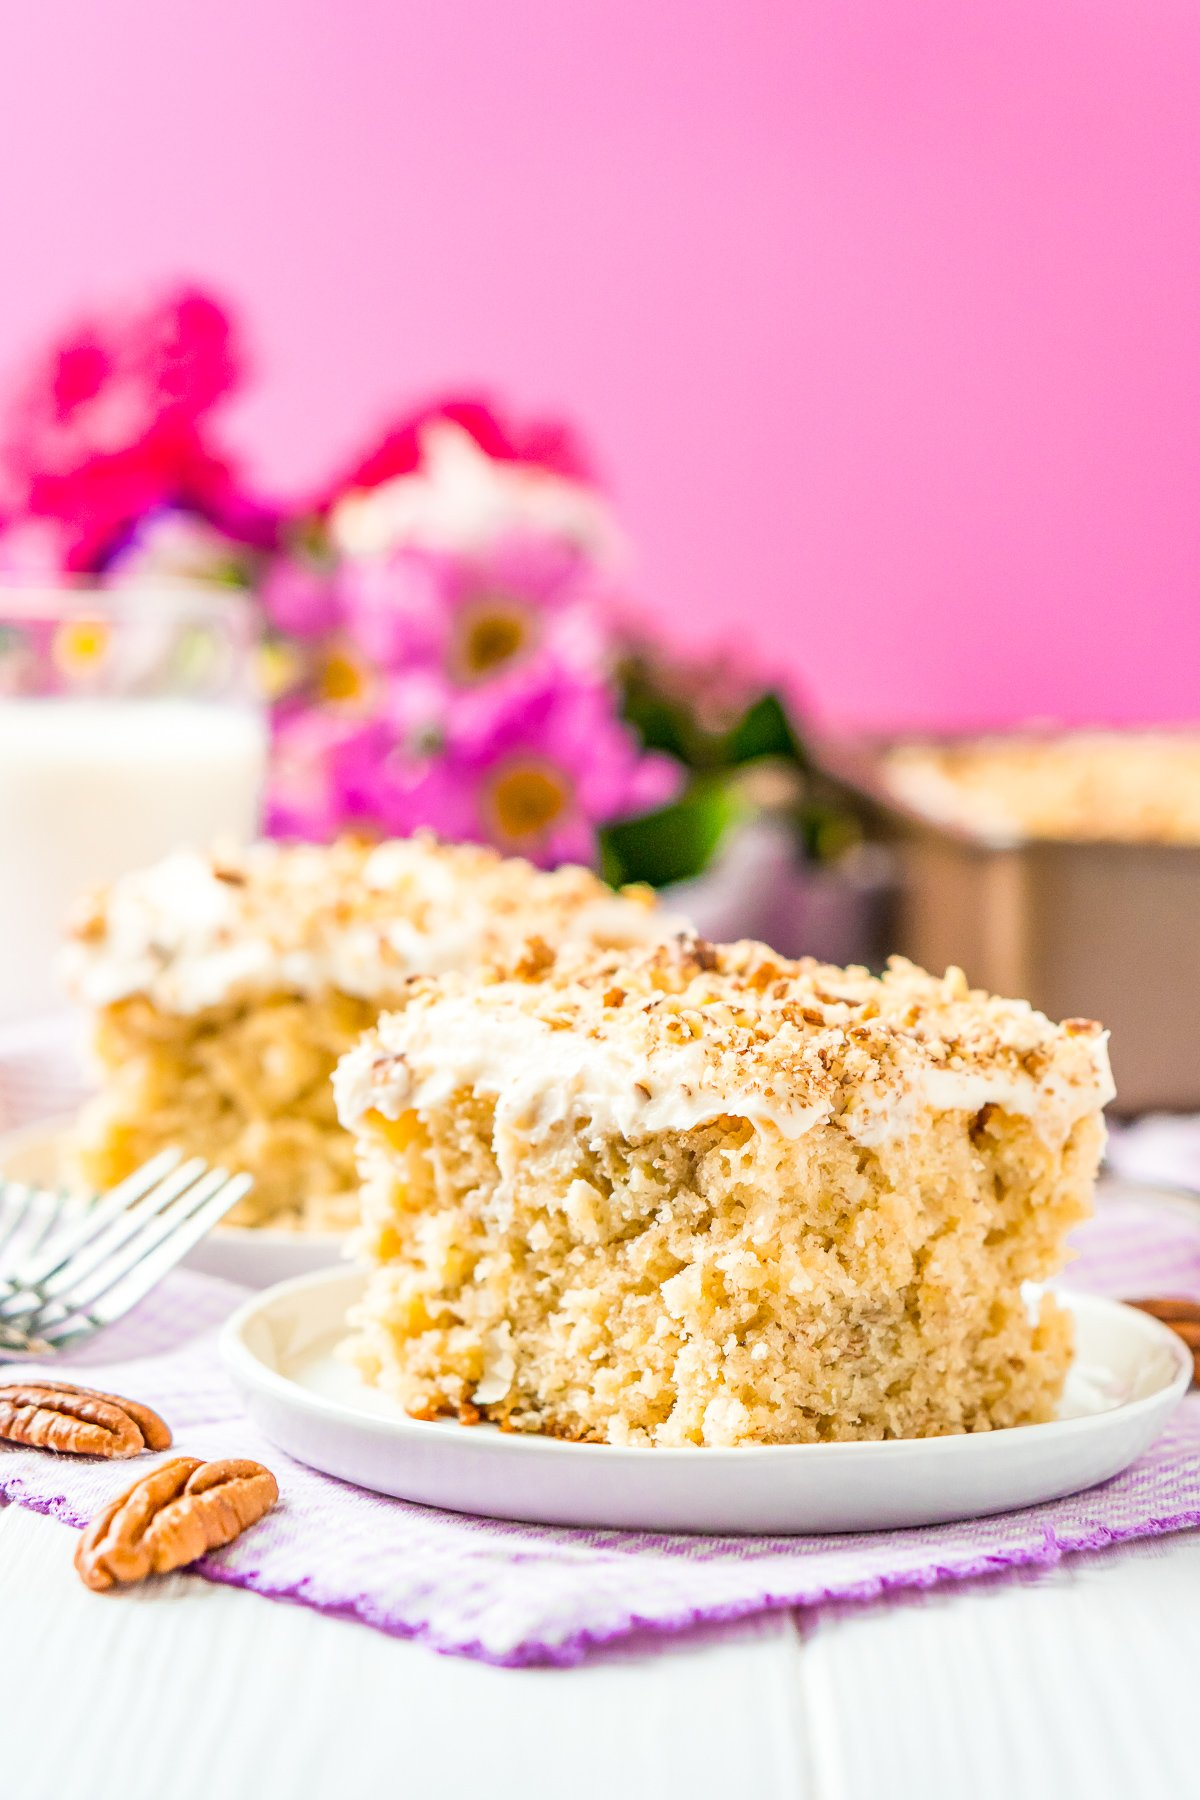 Two slices of hummingbird cake on small white dessert plates with a pink background.